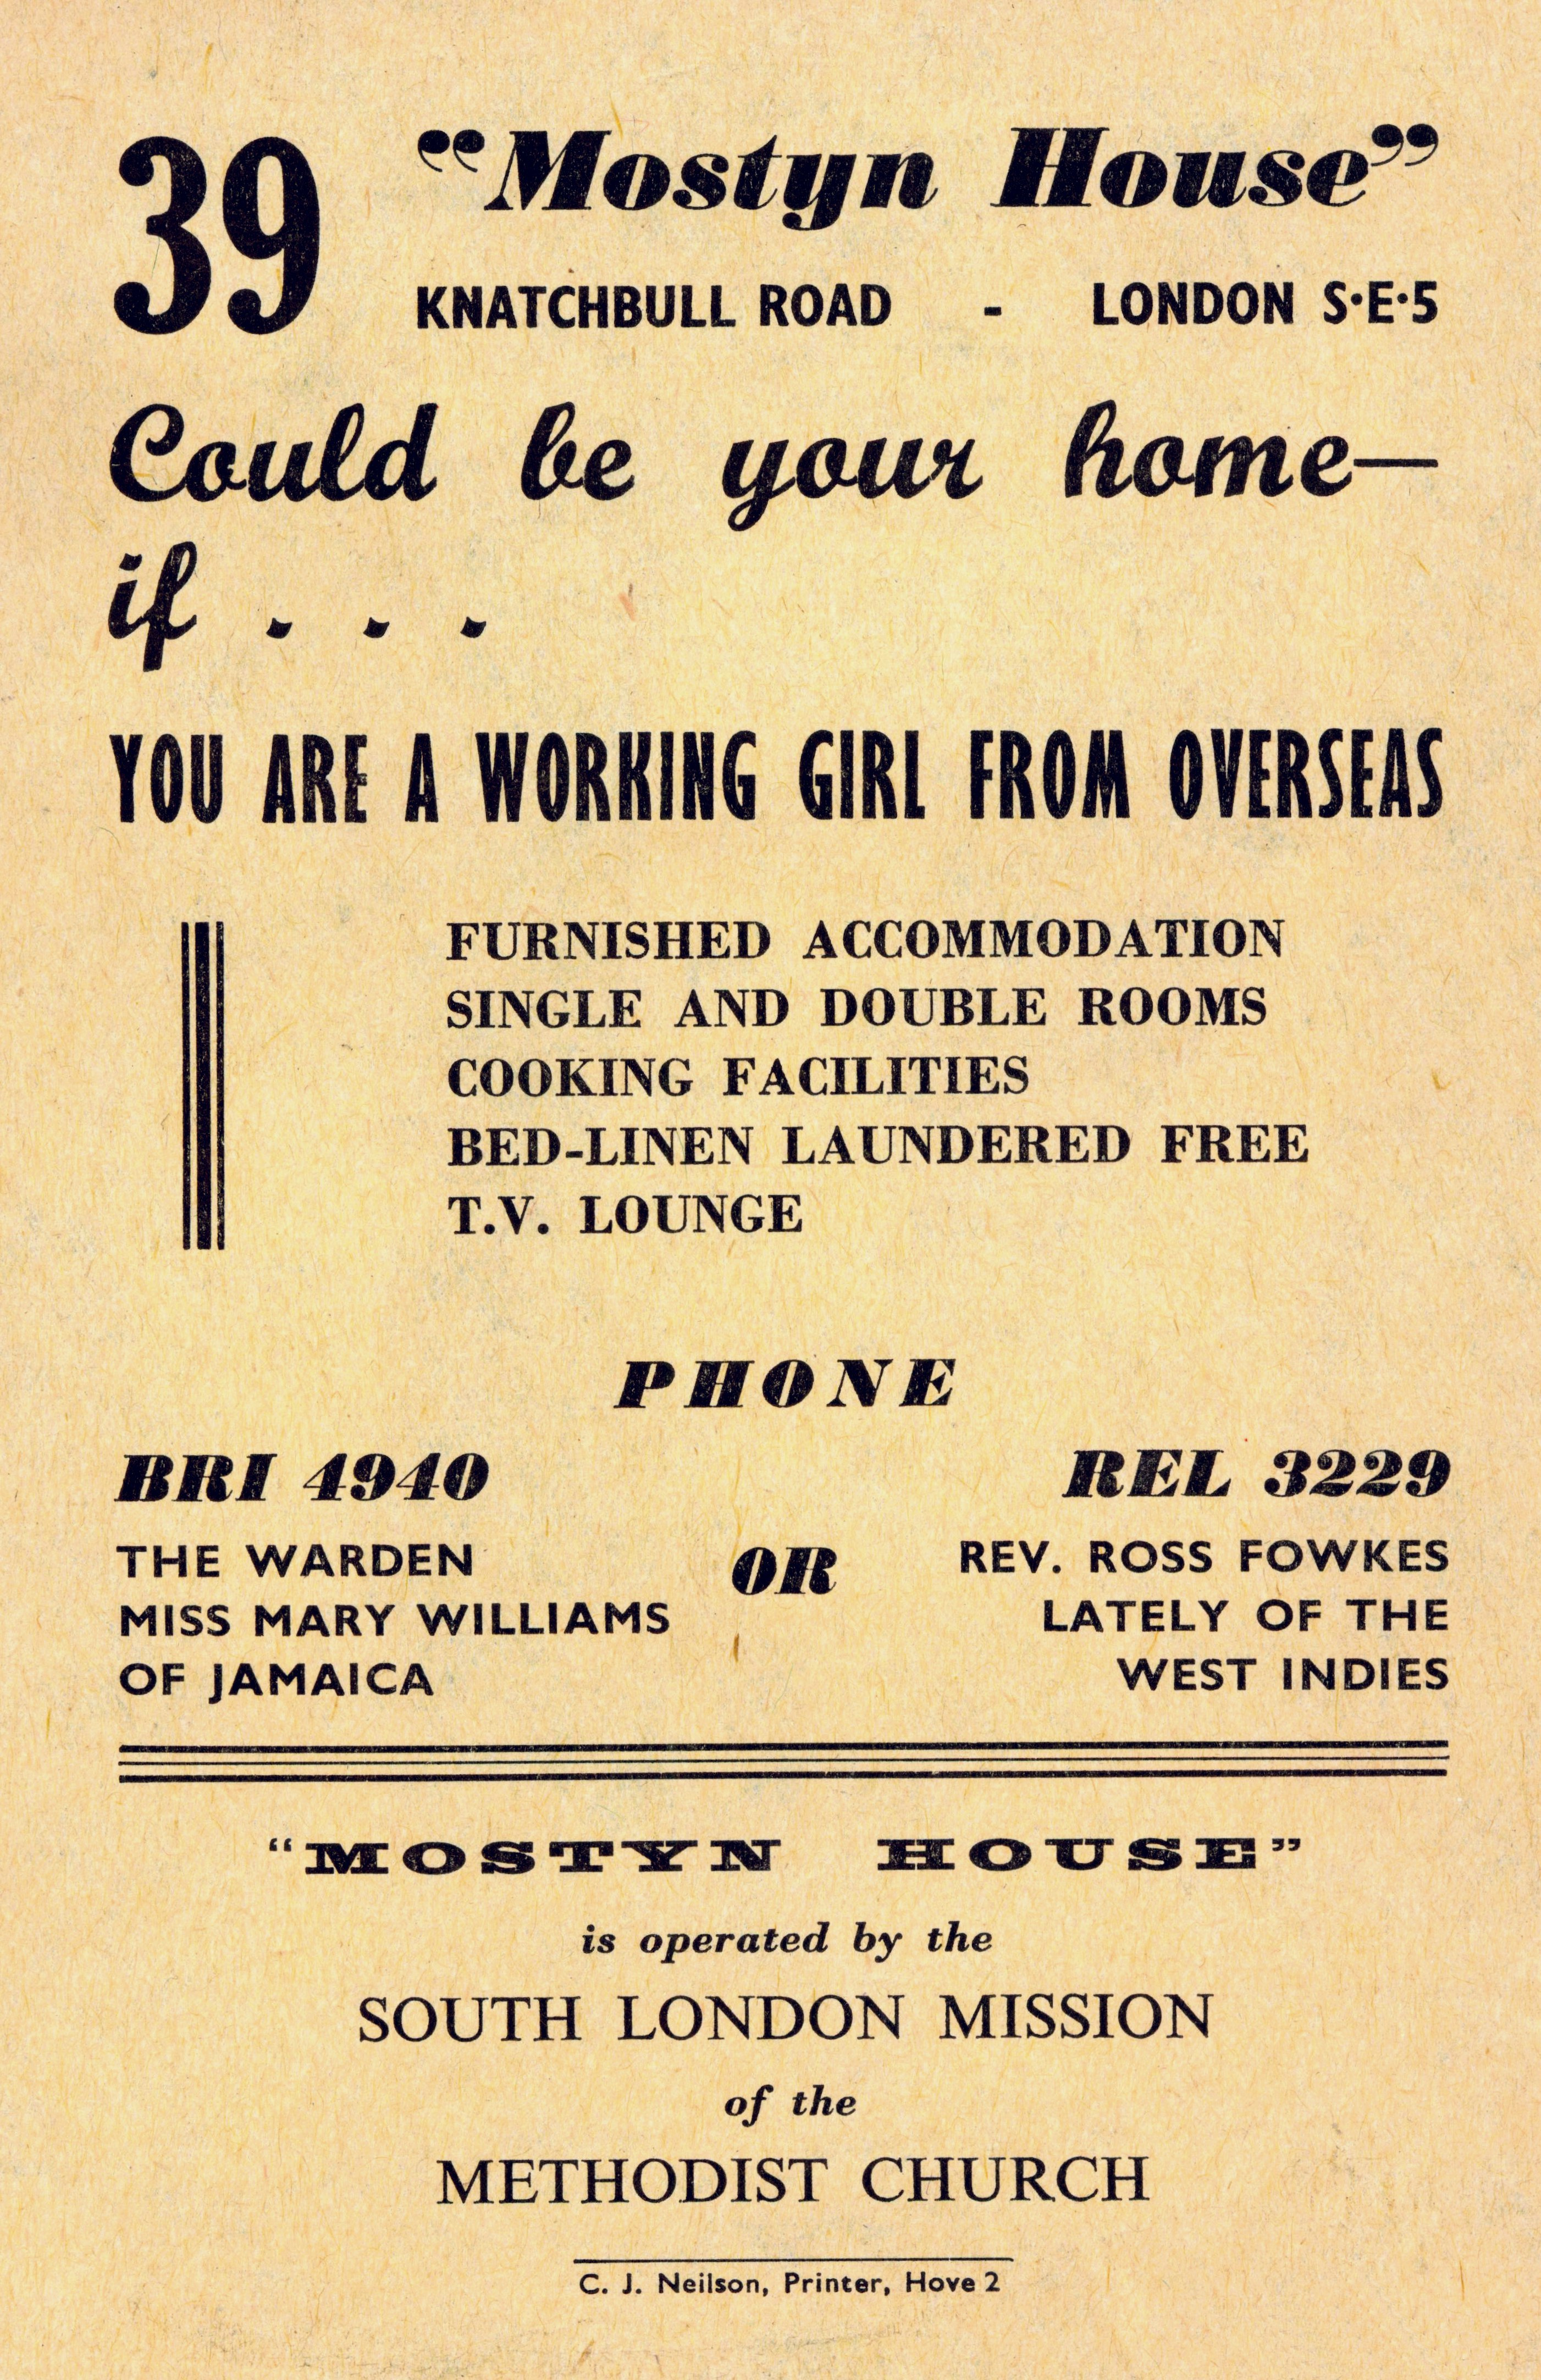 An advertisement for a hostel in Brixton, ca 1960. Image courtesy of Lambeth Archives